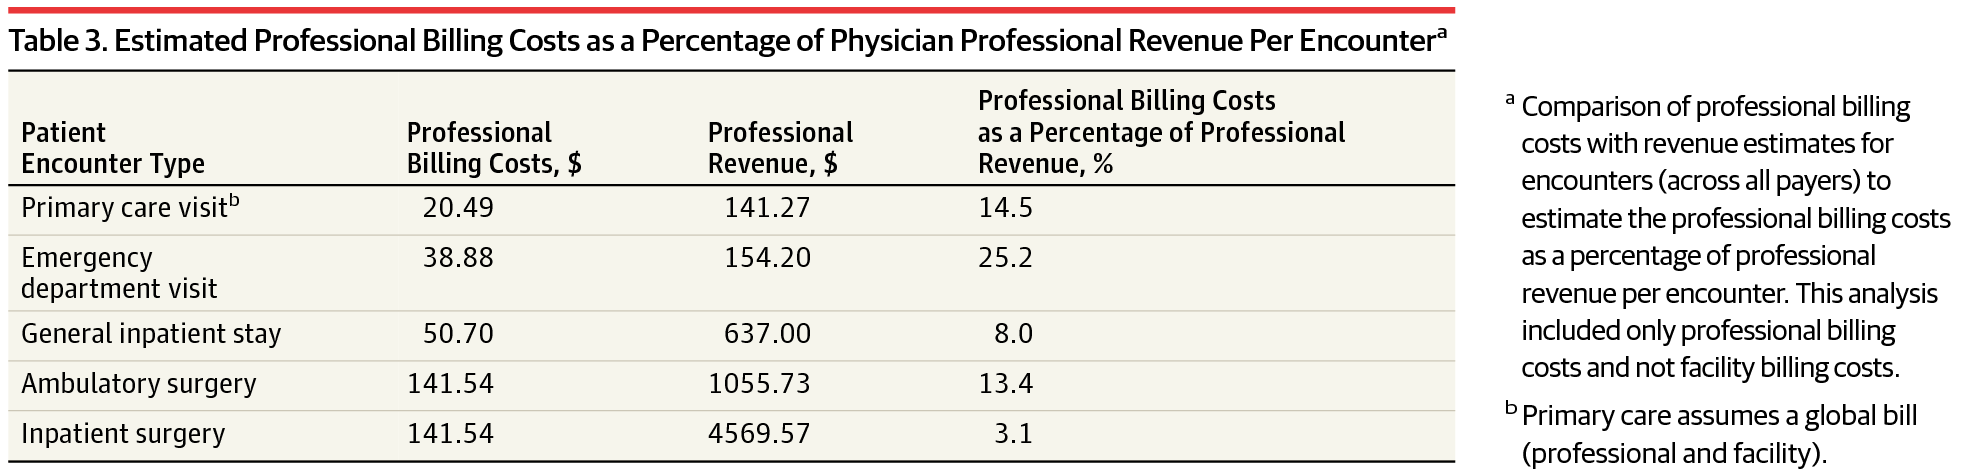 Costs Associated With Physician Billing and Insurance-Related Activities